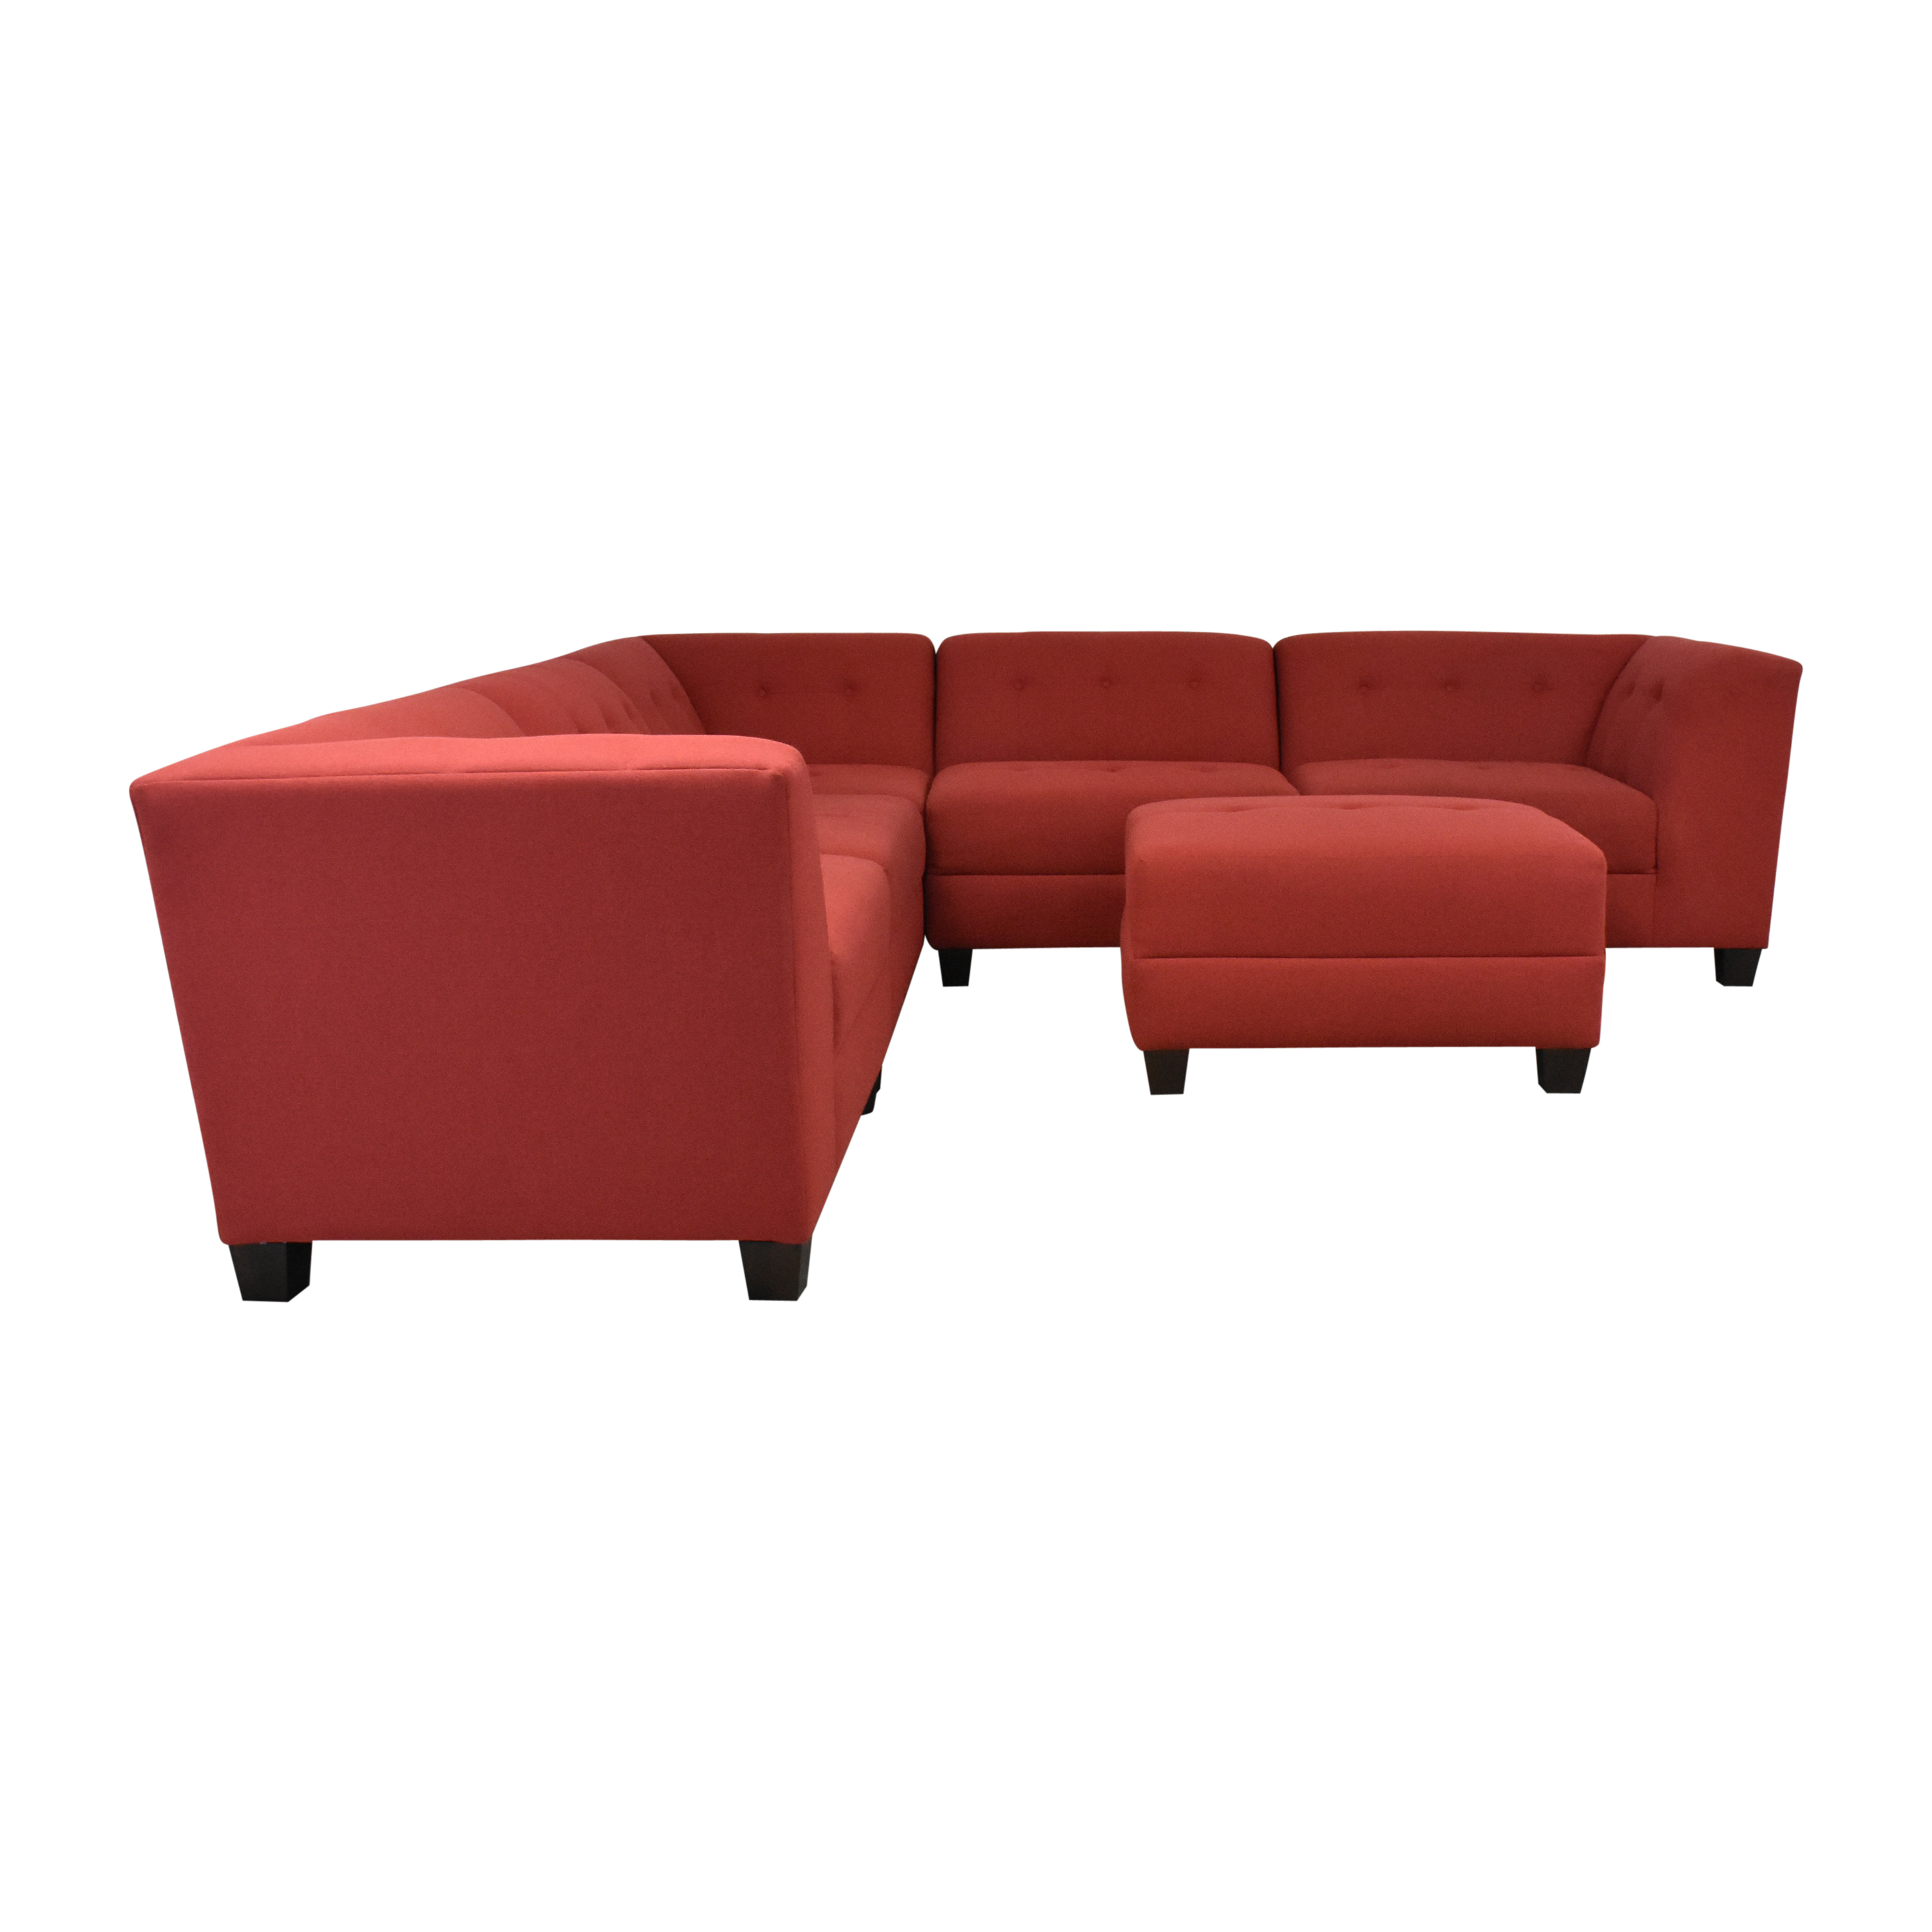 England Furniture England Furniture Miller Five Piece Sectional Sofa with Ottoman ma